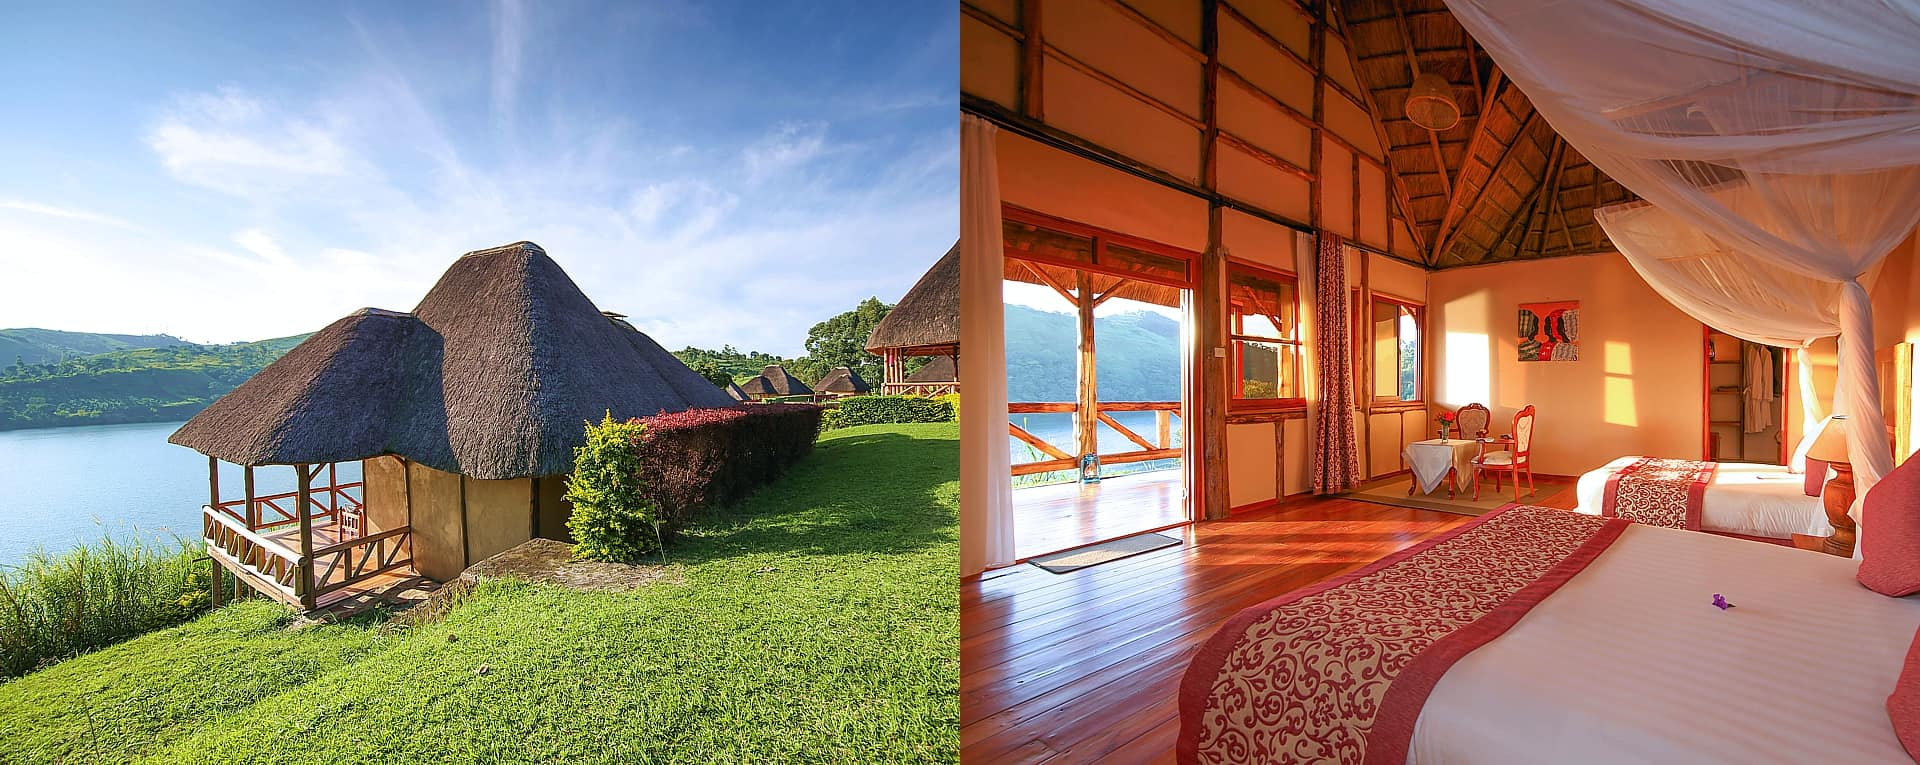 Where To Stay In Kibale